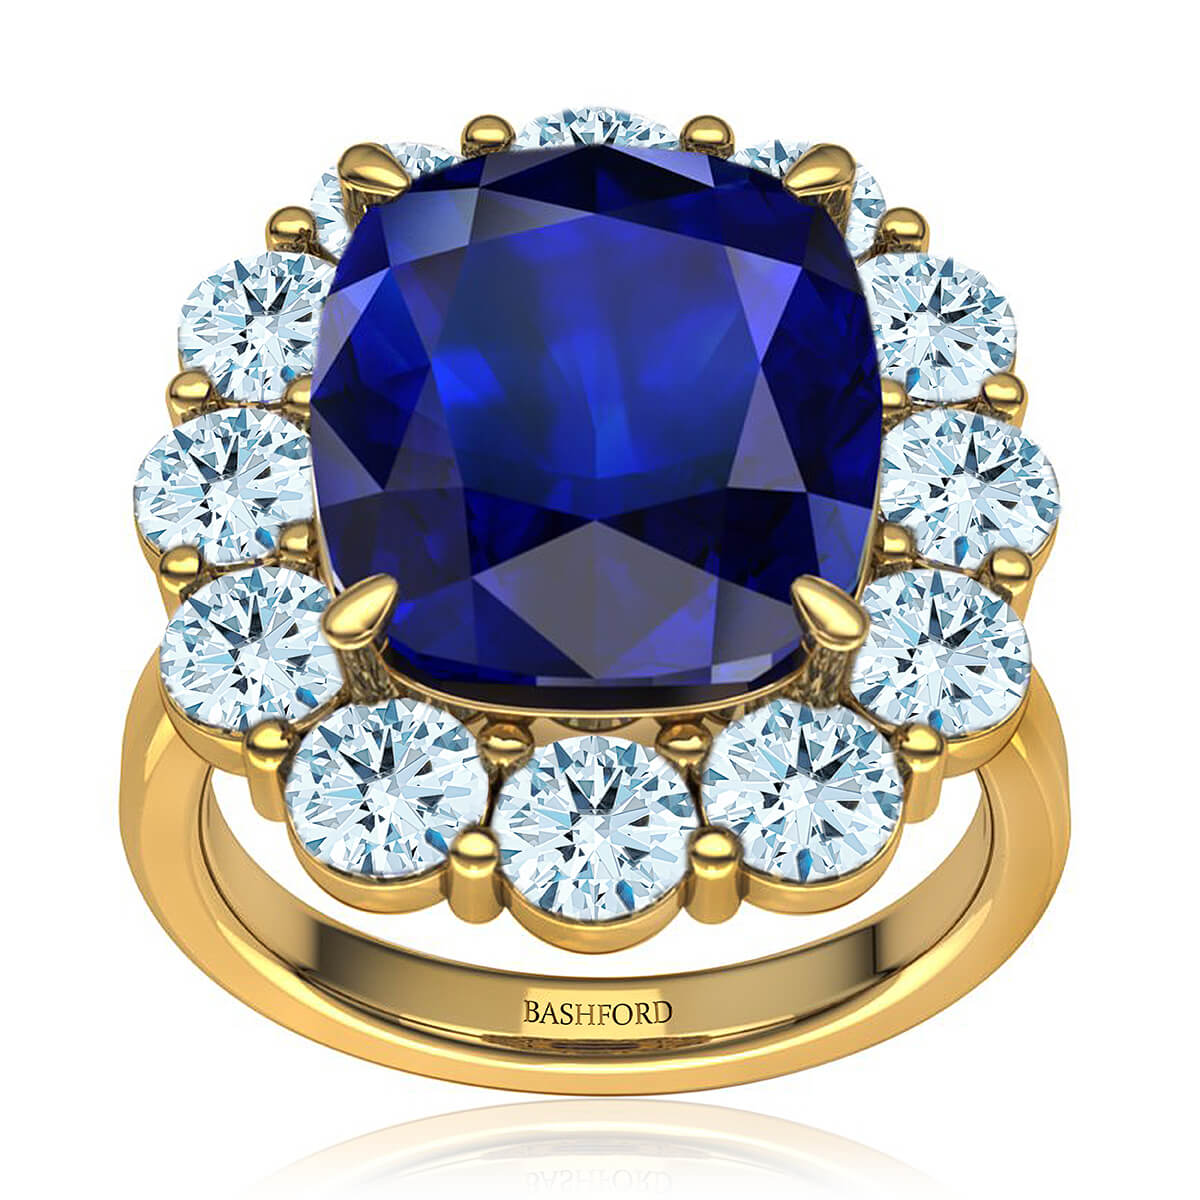 Eugenia Sapphire Ring (with 8x6 Cushion Blue Sapphire)